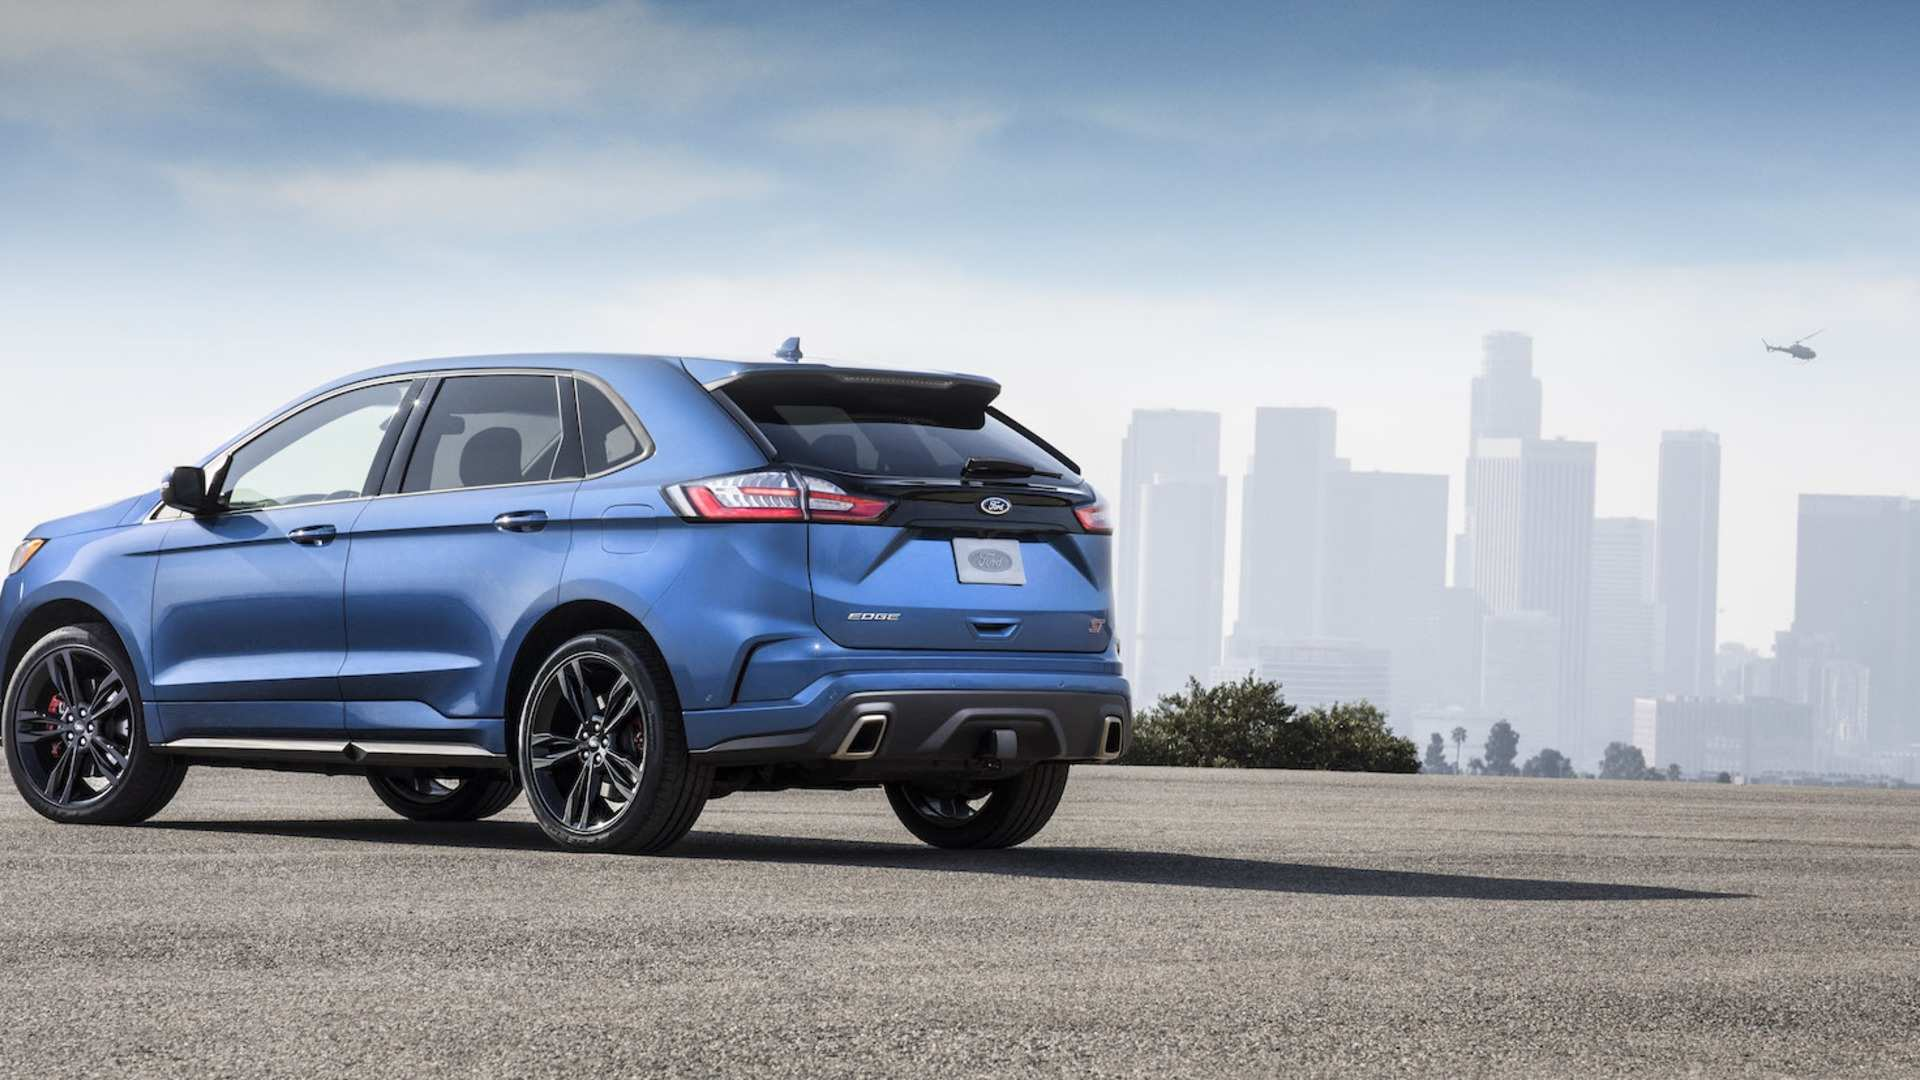 92 The Best 2020 Ford Edge New Design Exterior